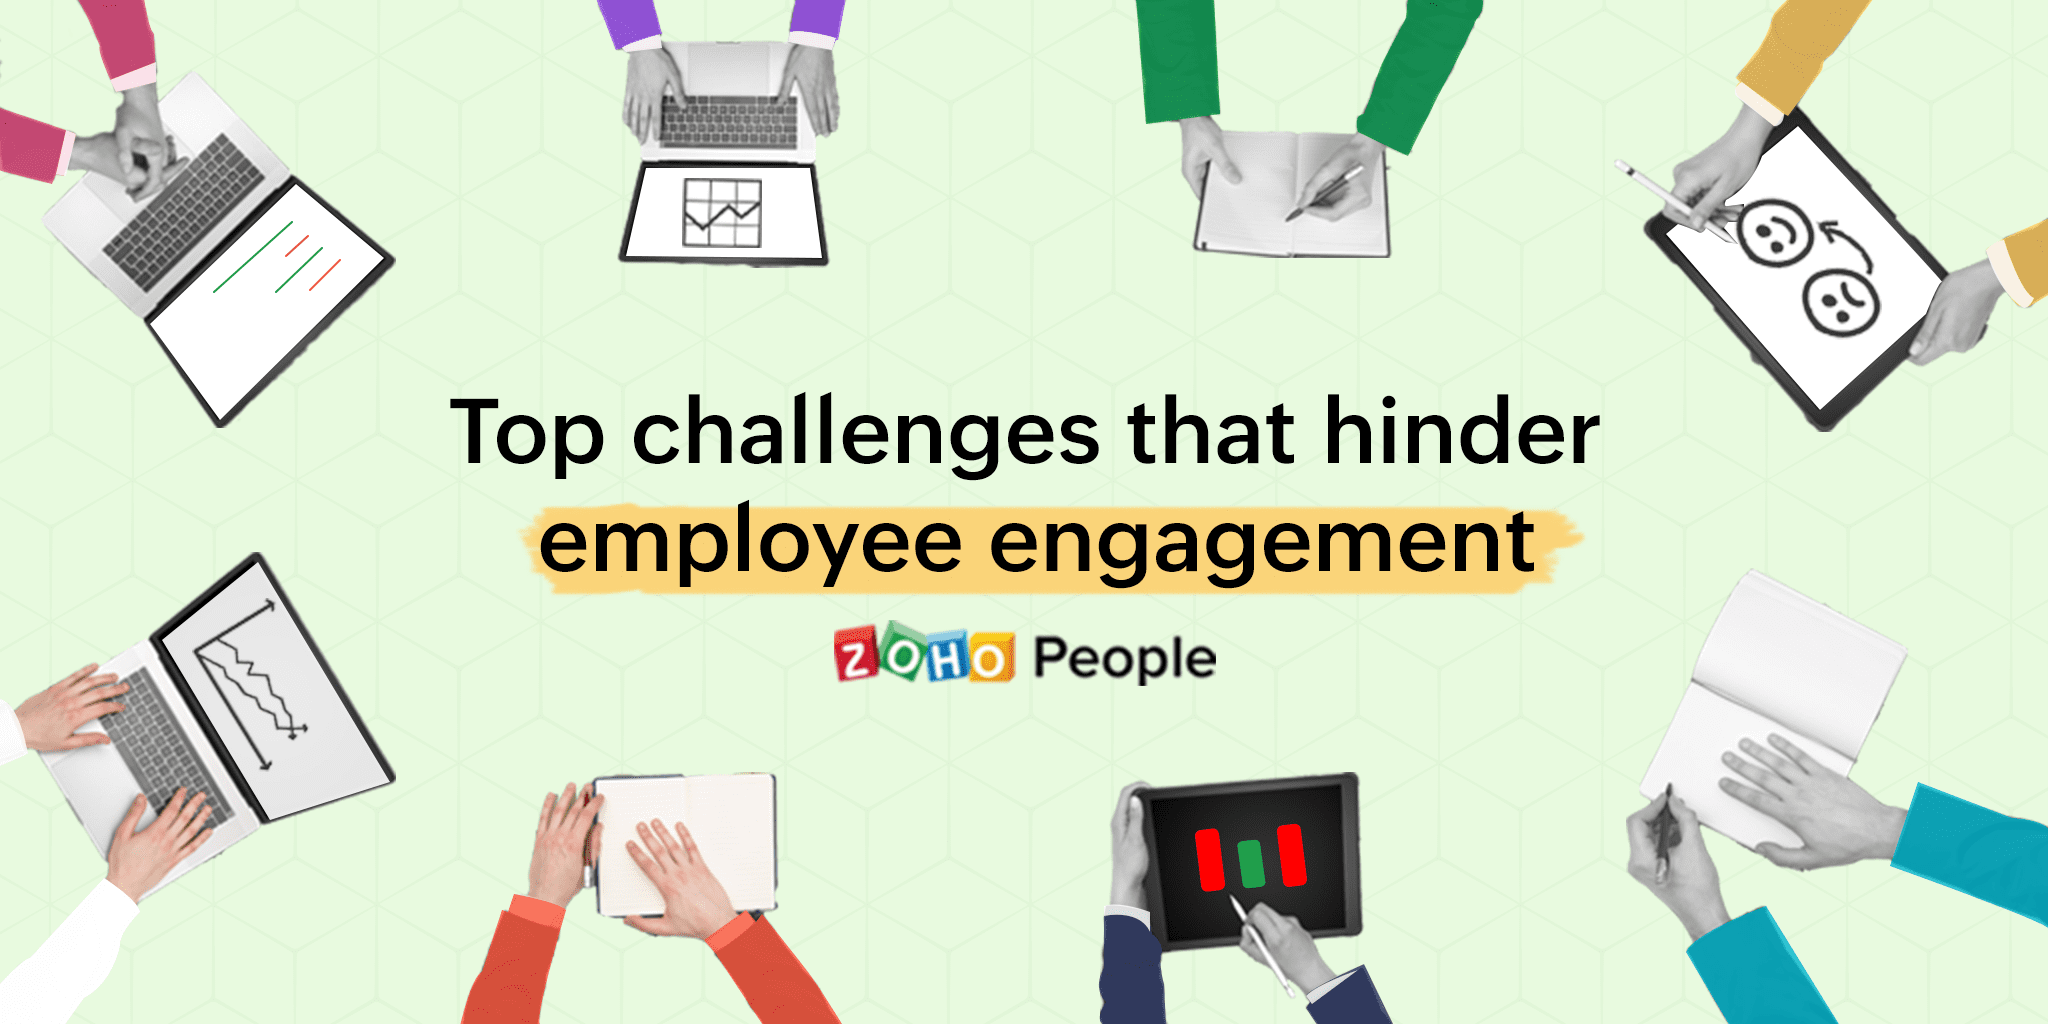 Top challenges that hinder employee engagement and tips to tackle them